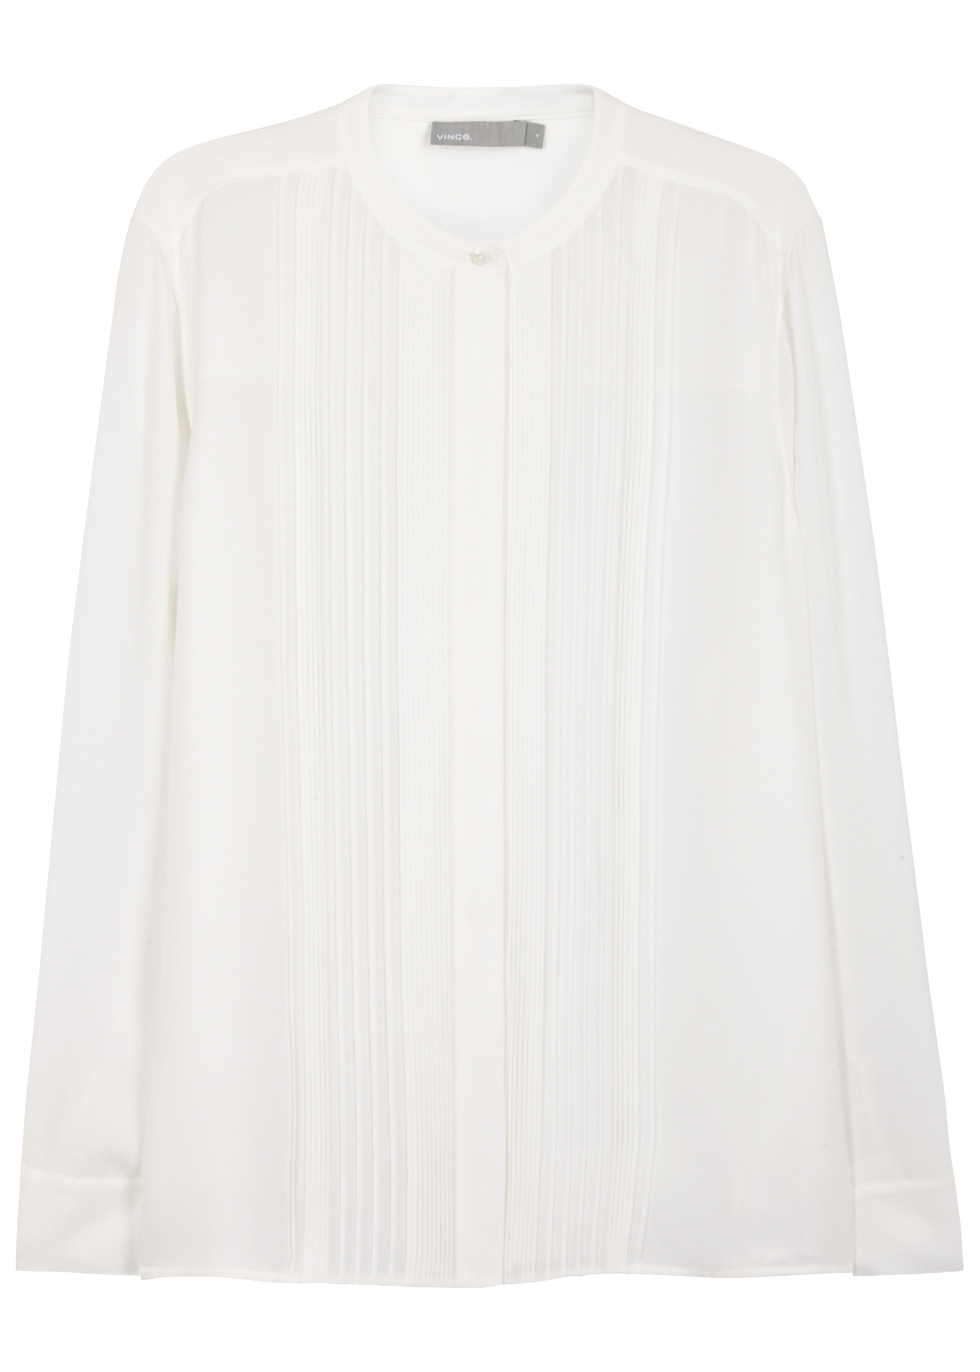 Off White Pleated Silk Shirt - pattern: plain; style: shirt; predominant colour: white; occasions: evening, work; length: standard; neckline: collarstand; fibres: silk - 100%; fit: loose; sleeve length: long sleeve; sleeve style: standard; texture group: silky - light; pattern type: fabric; wardrobe: basic; season: a/w 2016